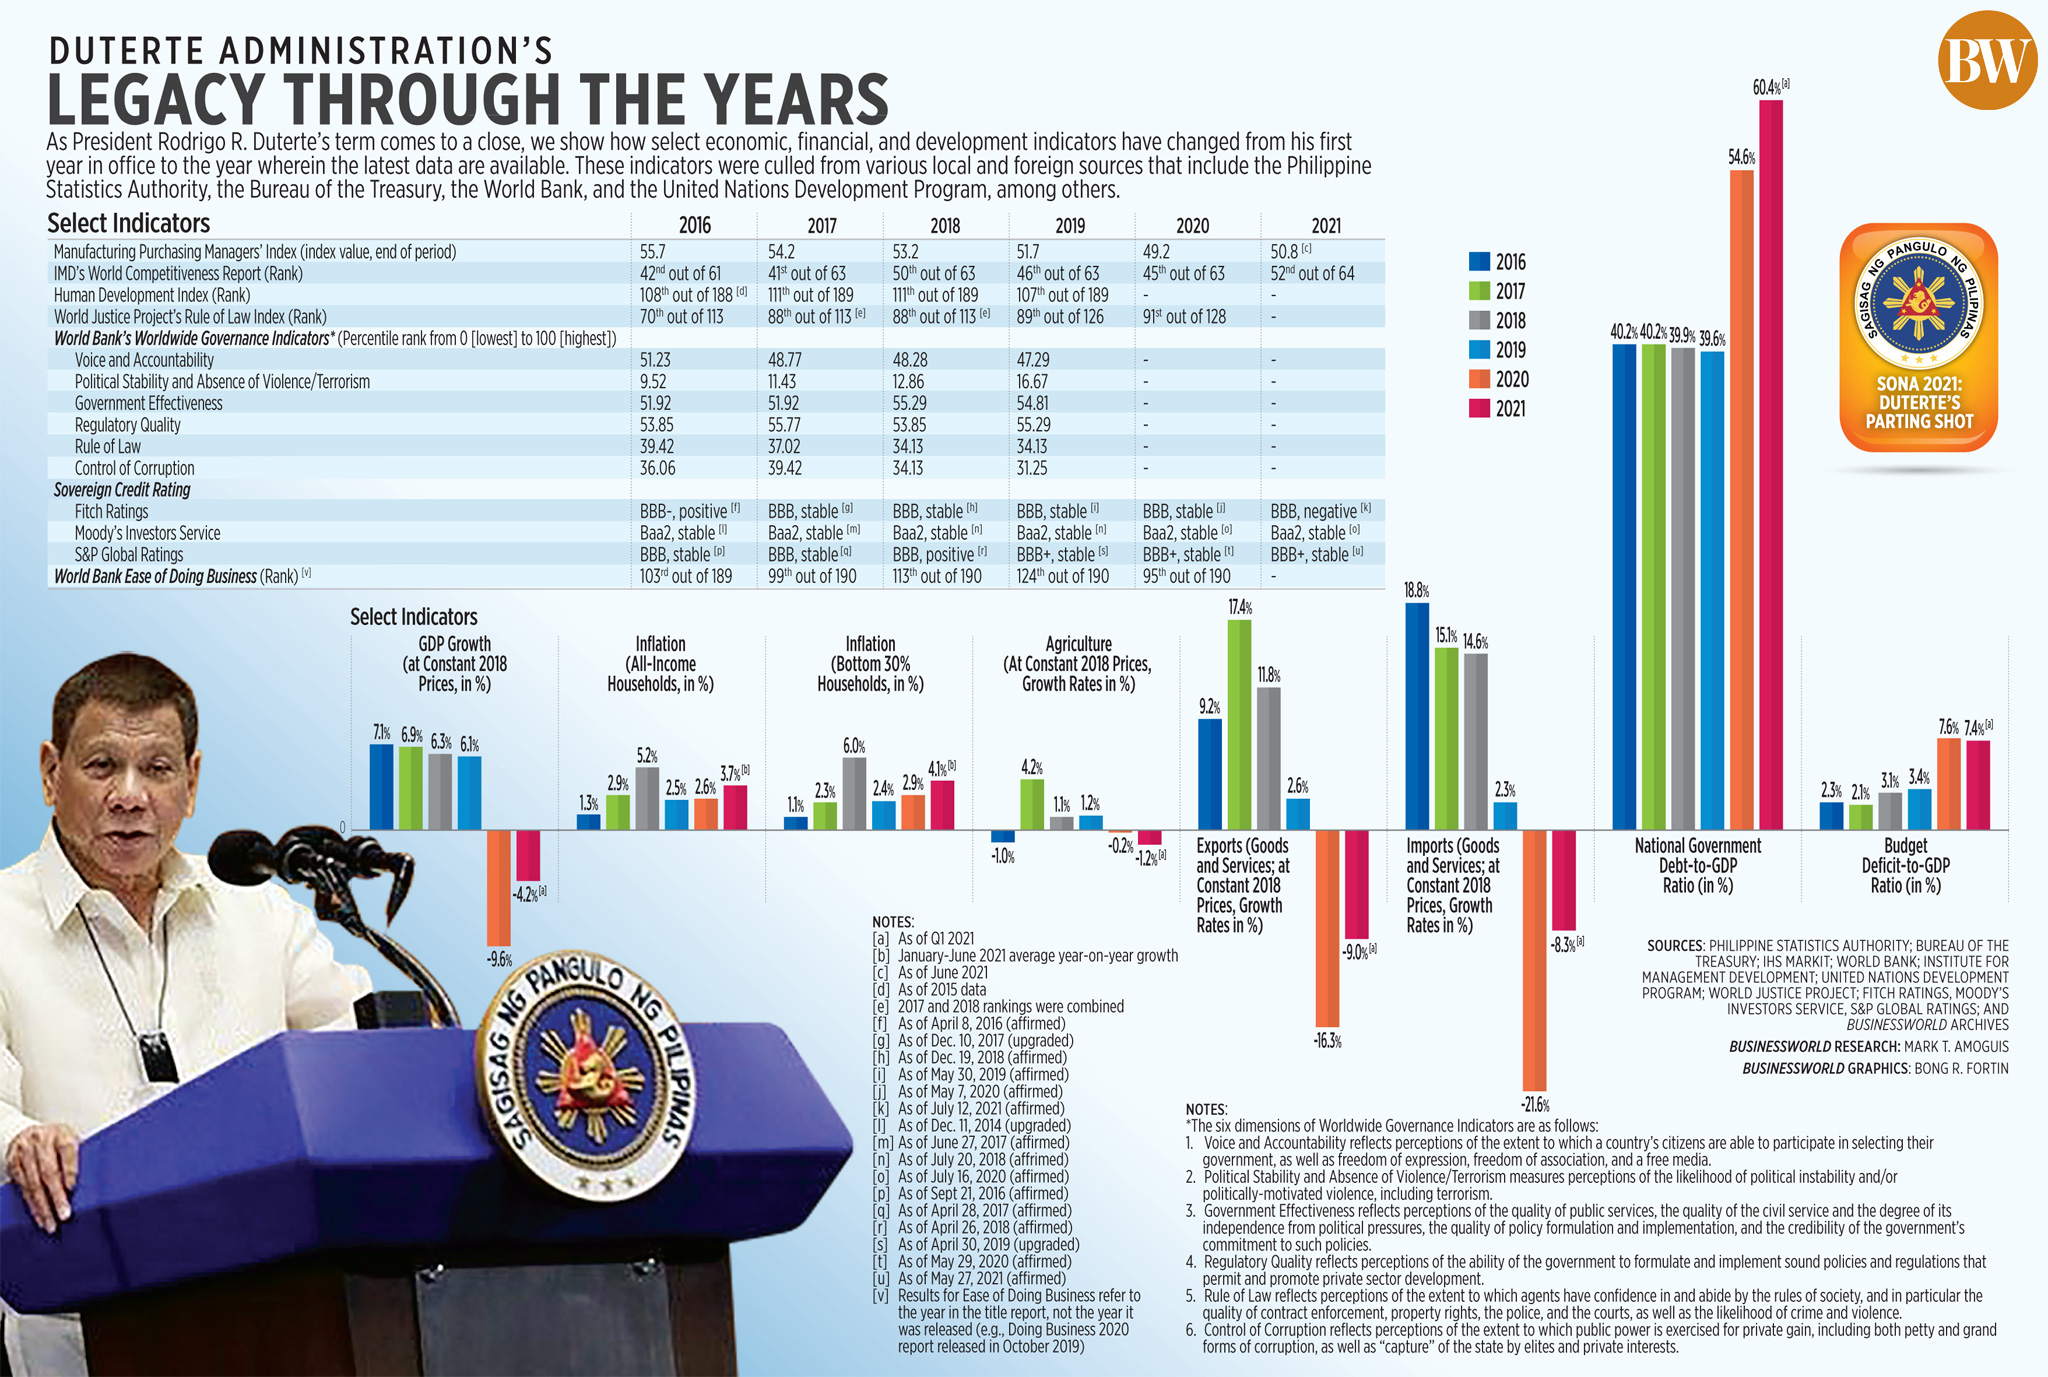 Duterte administration's legacy through the years